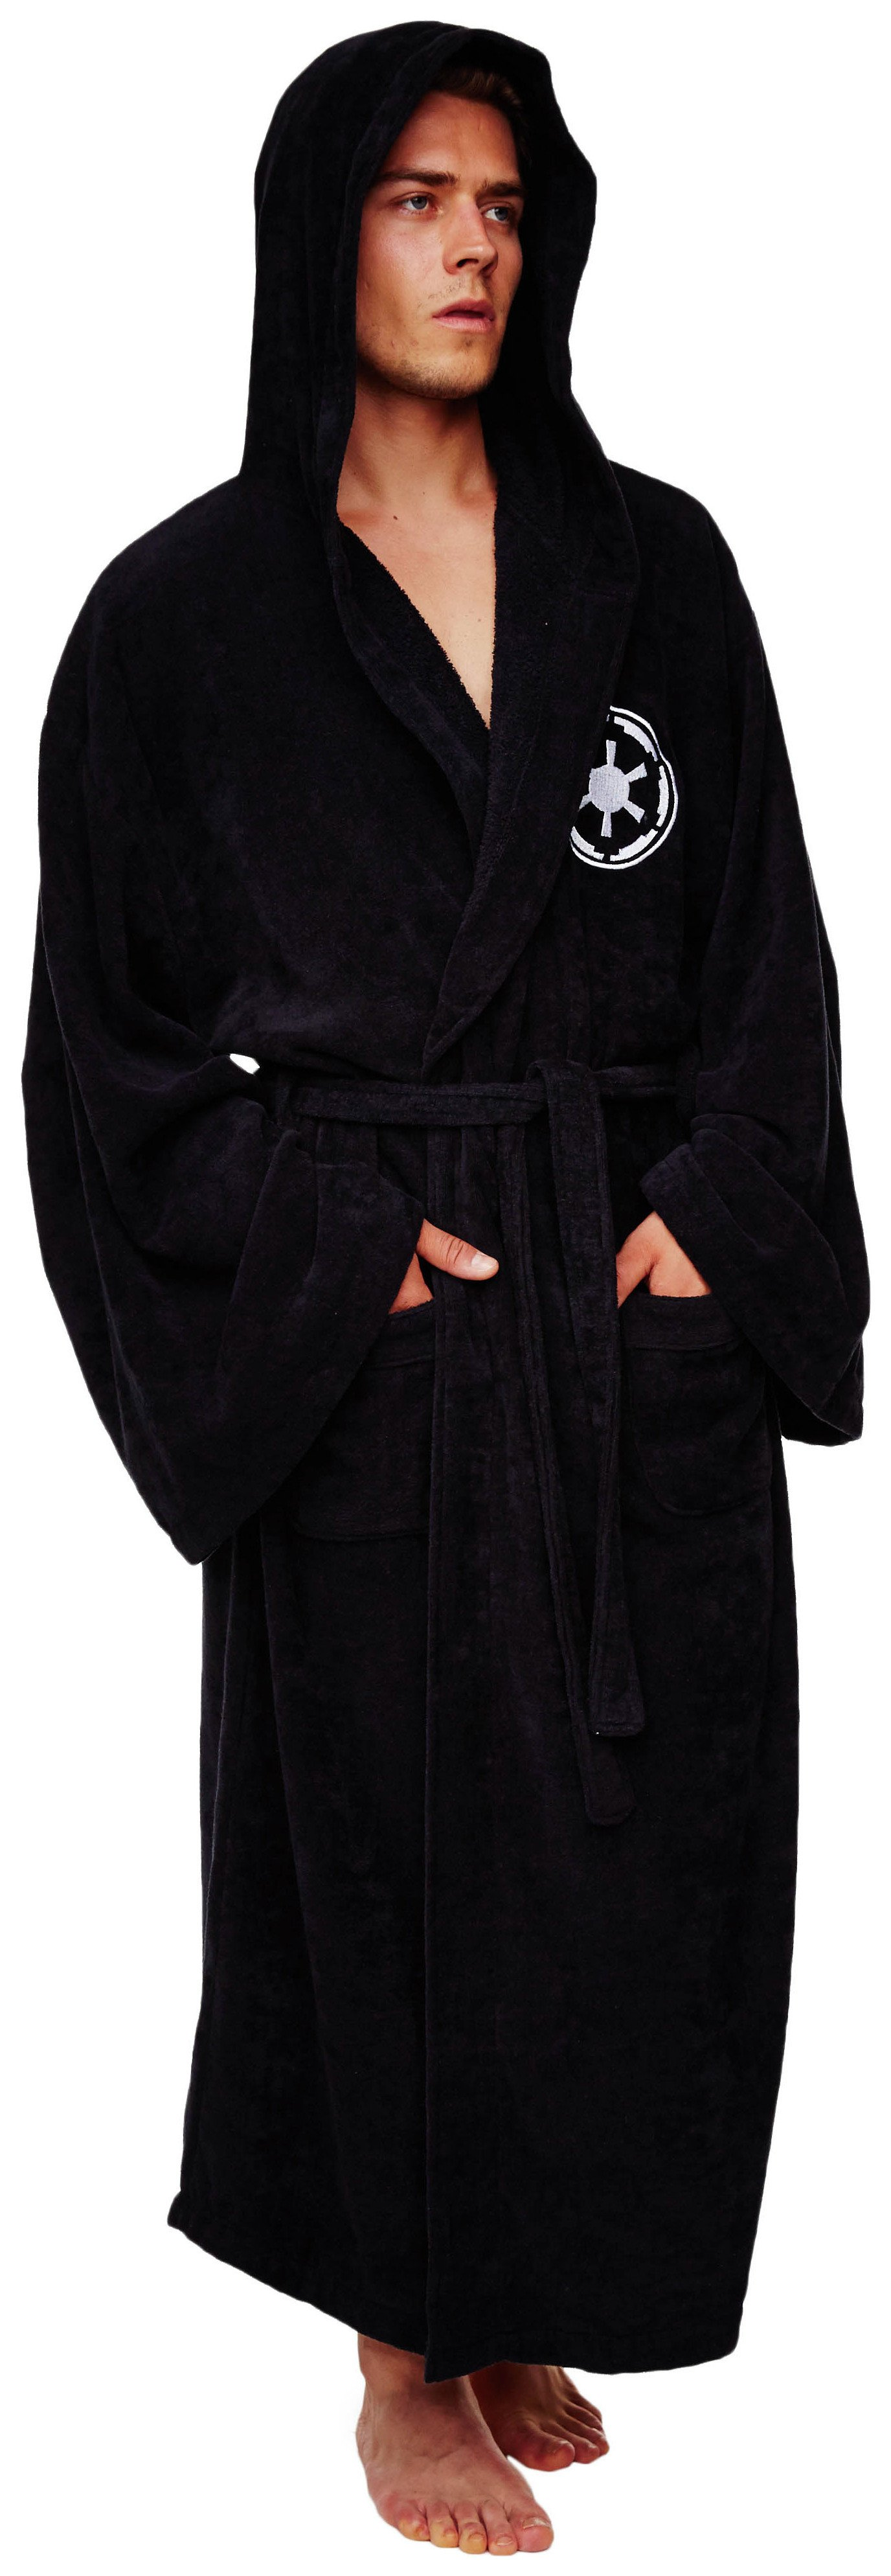 Stars Wars Galatic Robe